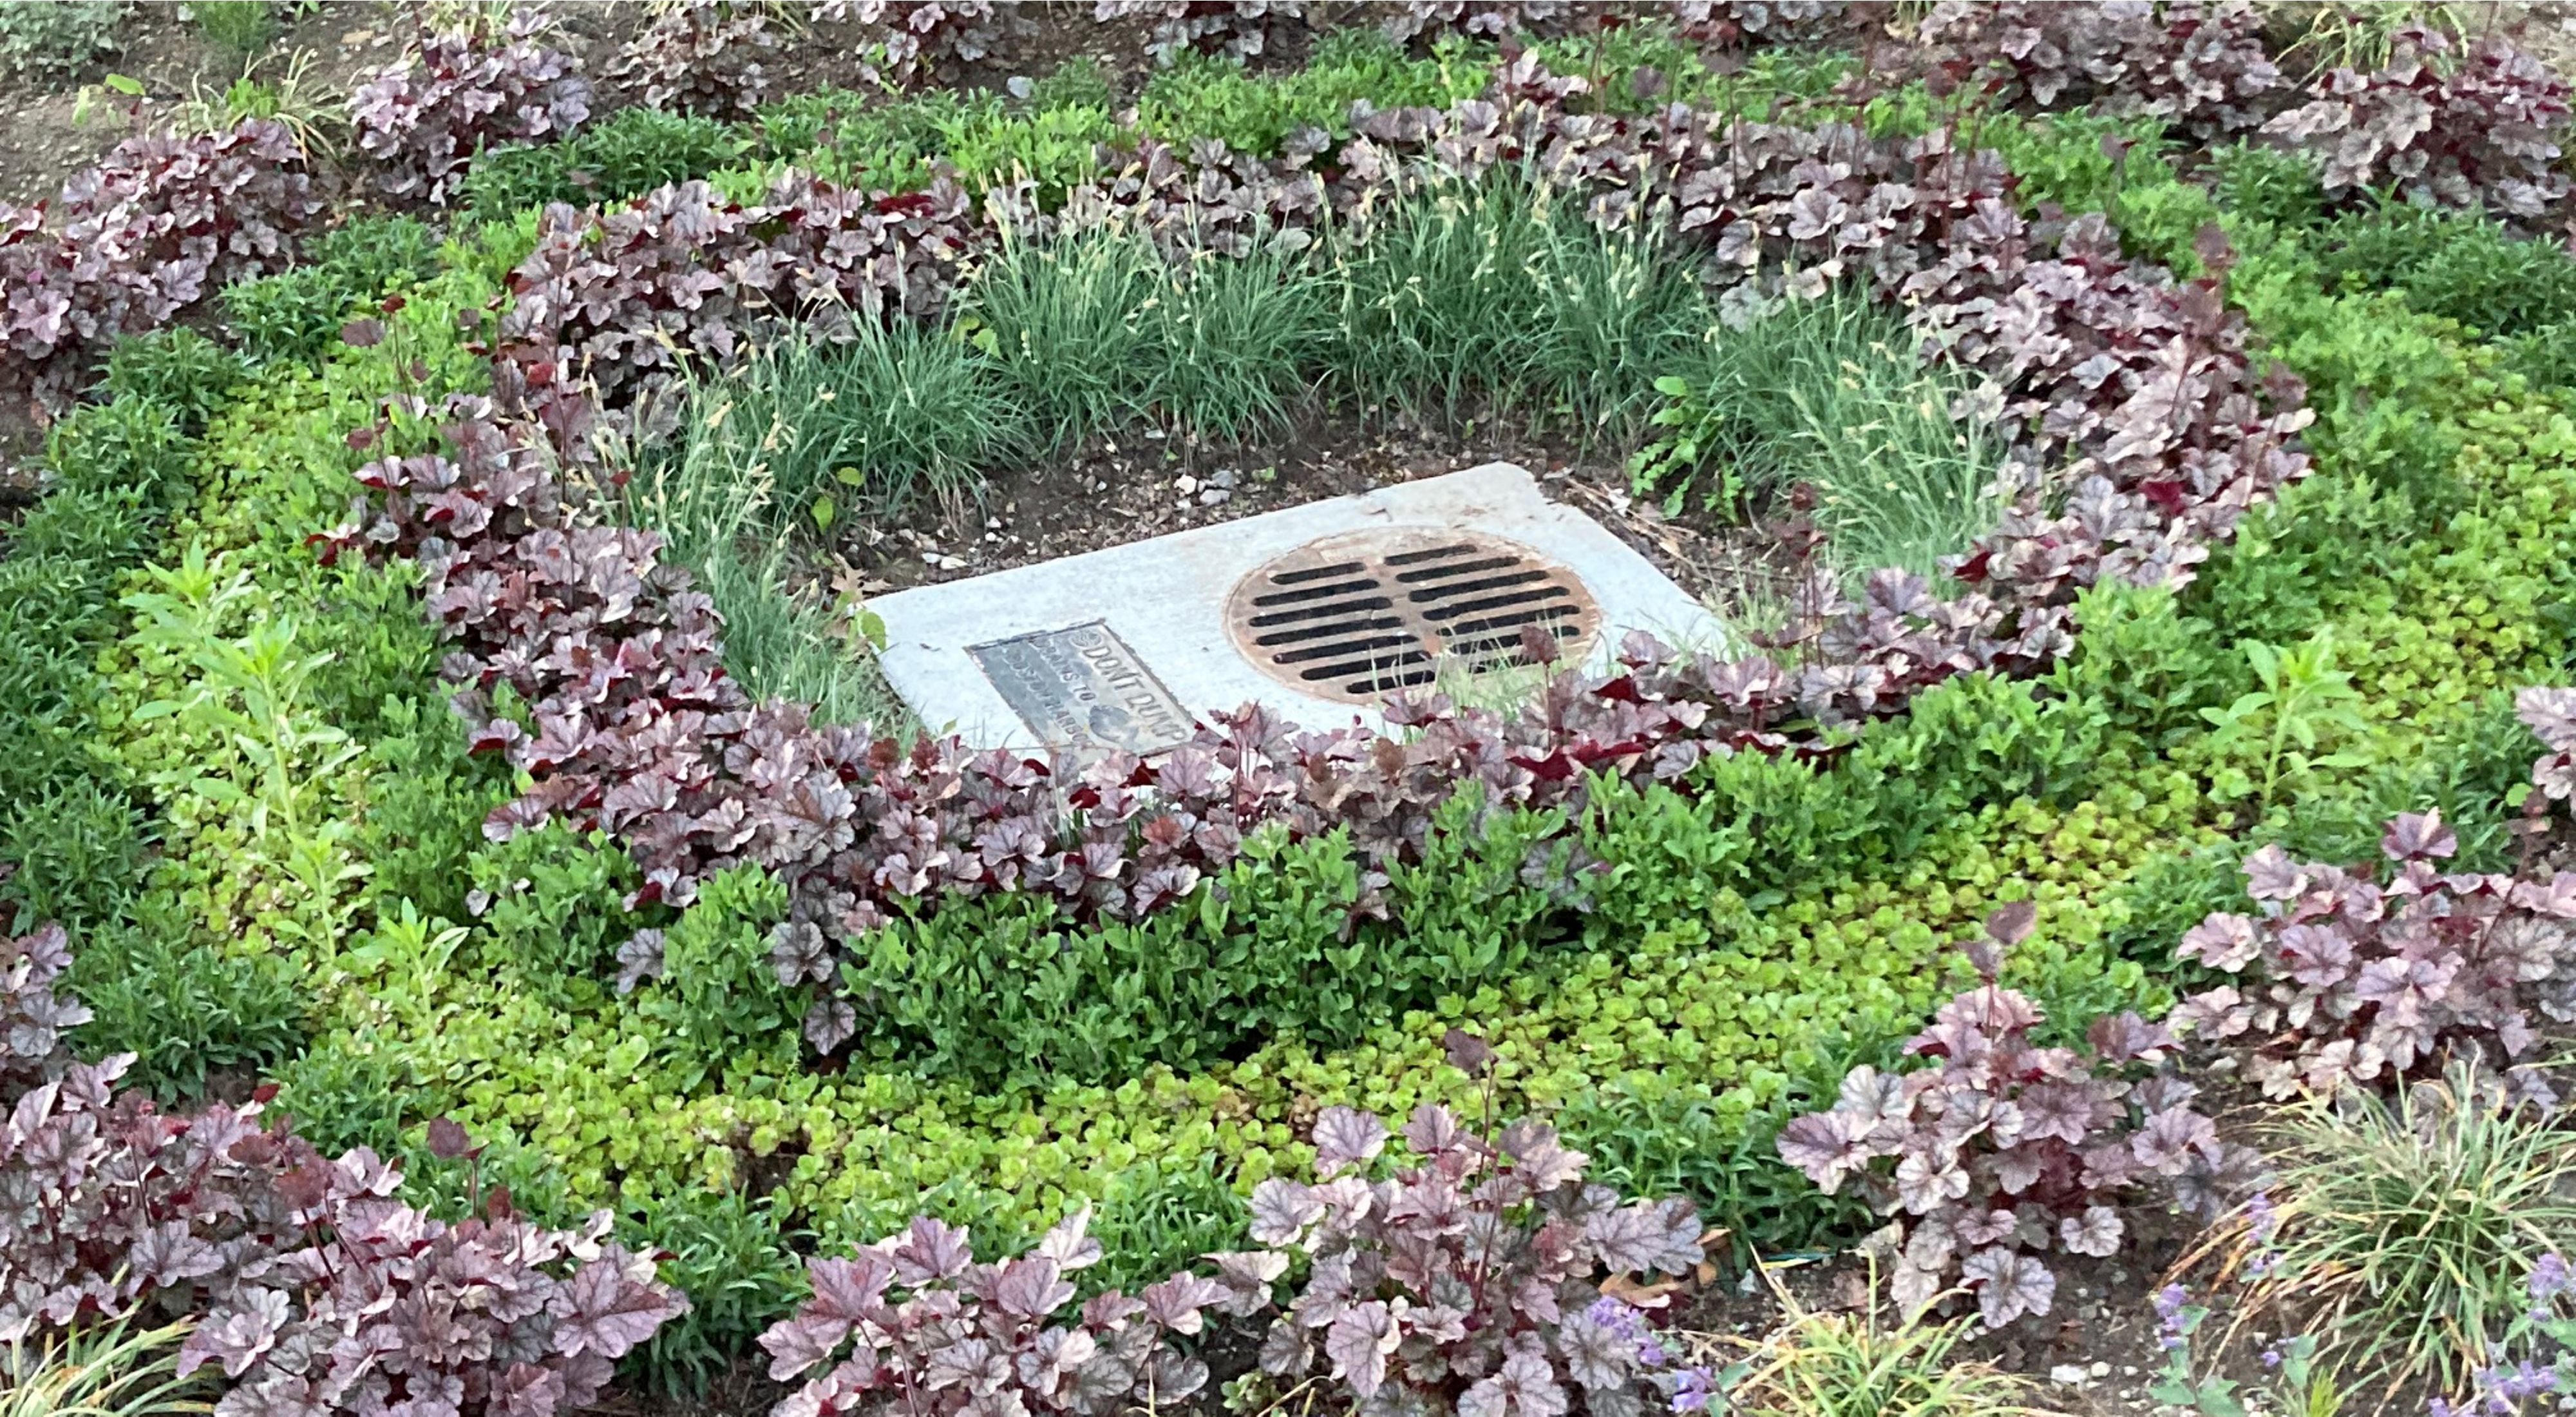 Close up photo of plants in concentric circles that form a rain garden in dirt near some houses.